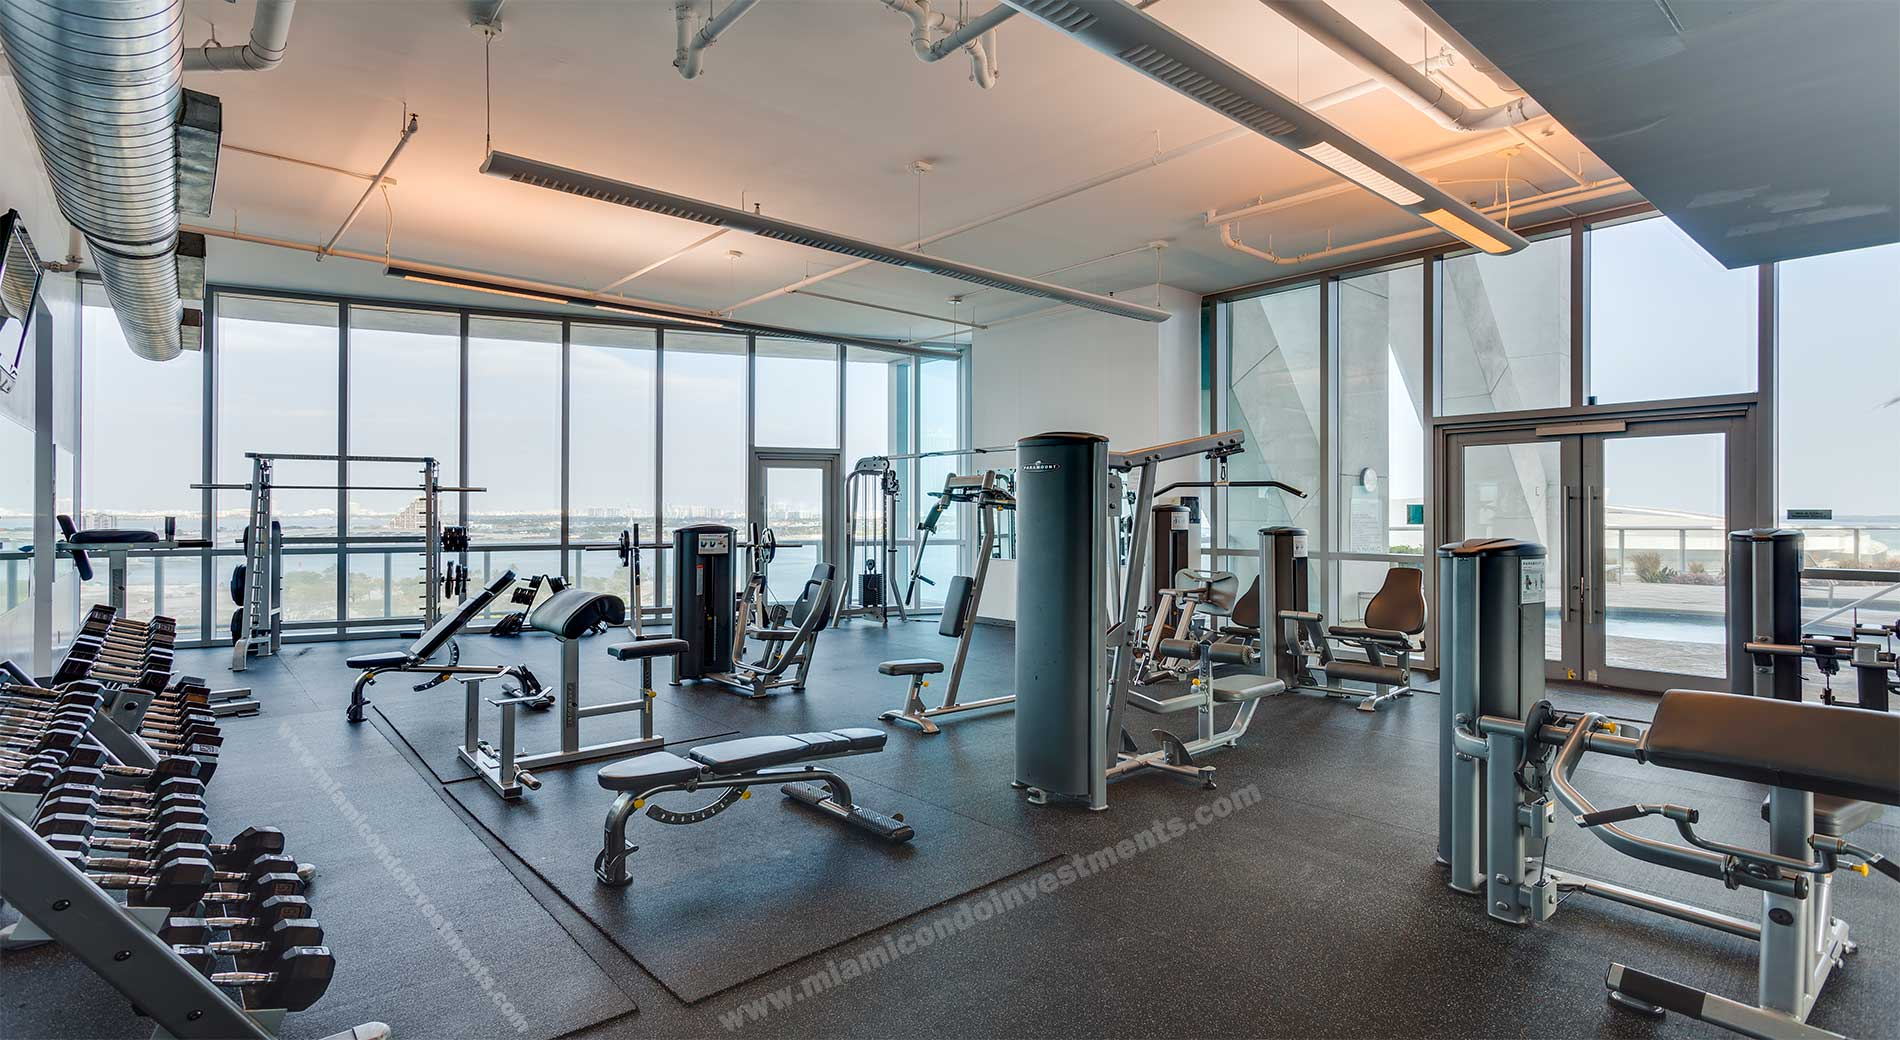 Fitness center furniture designs